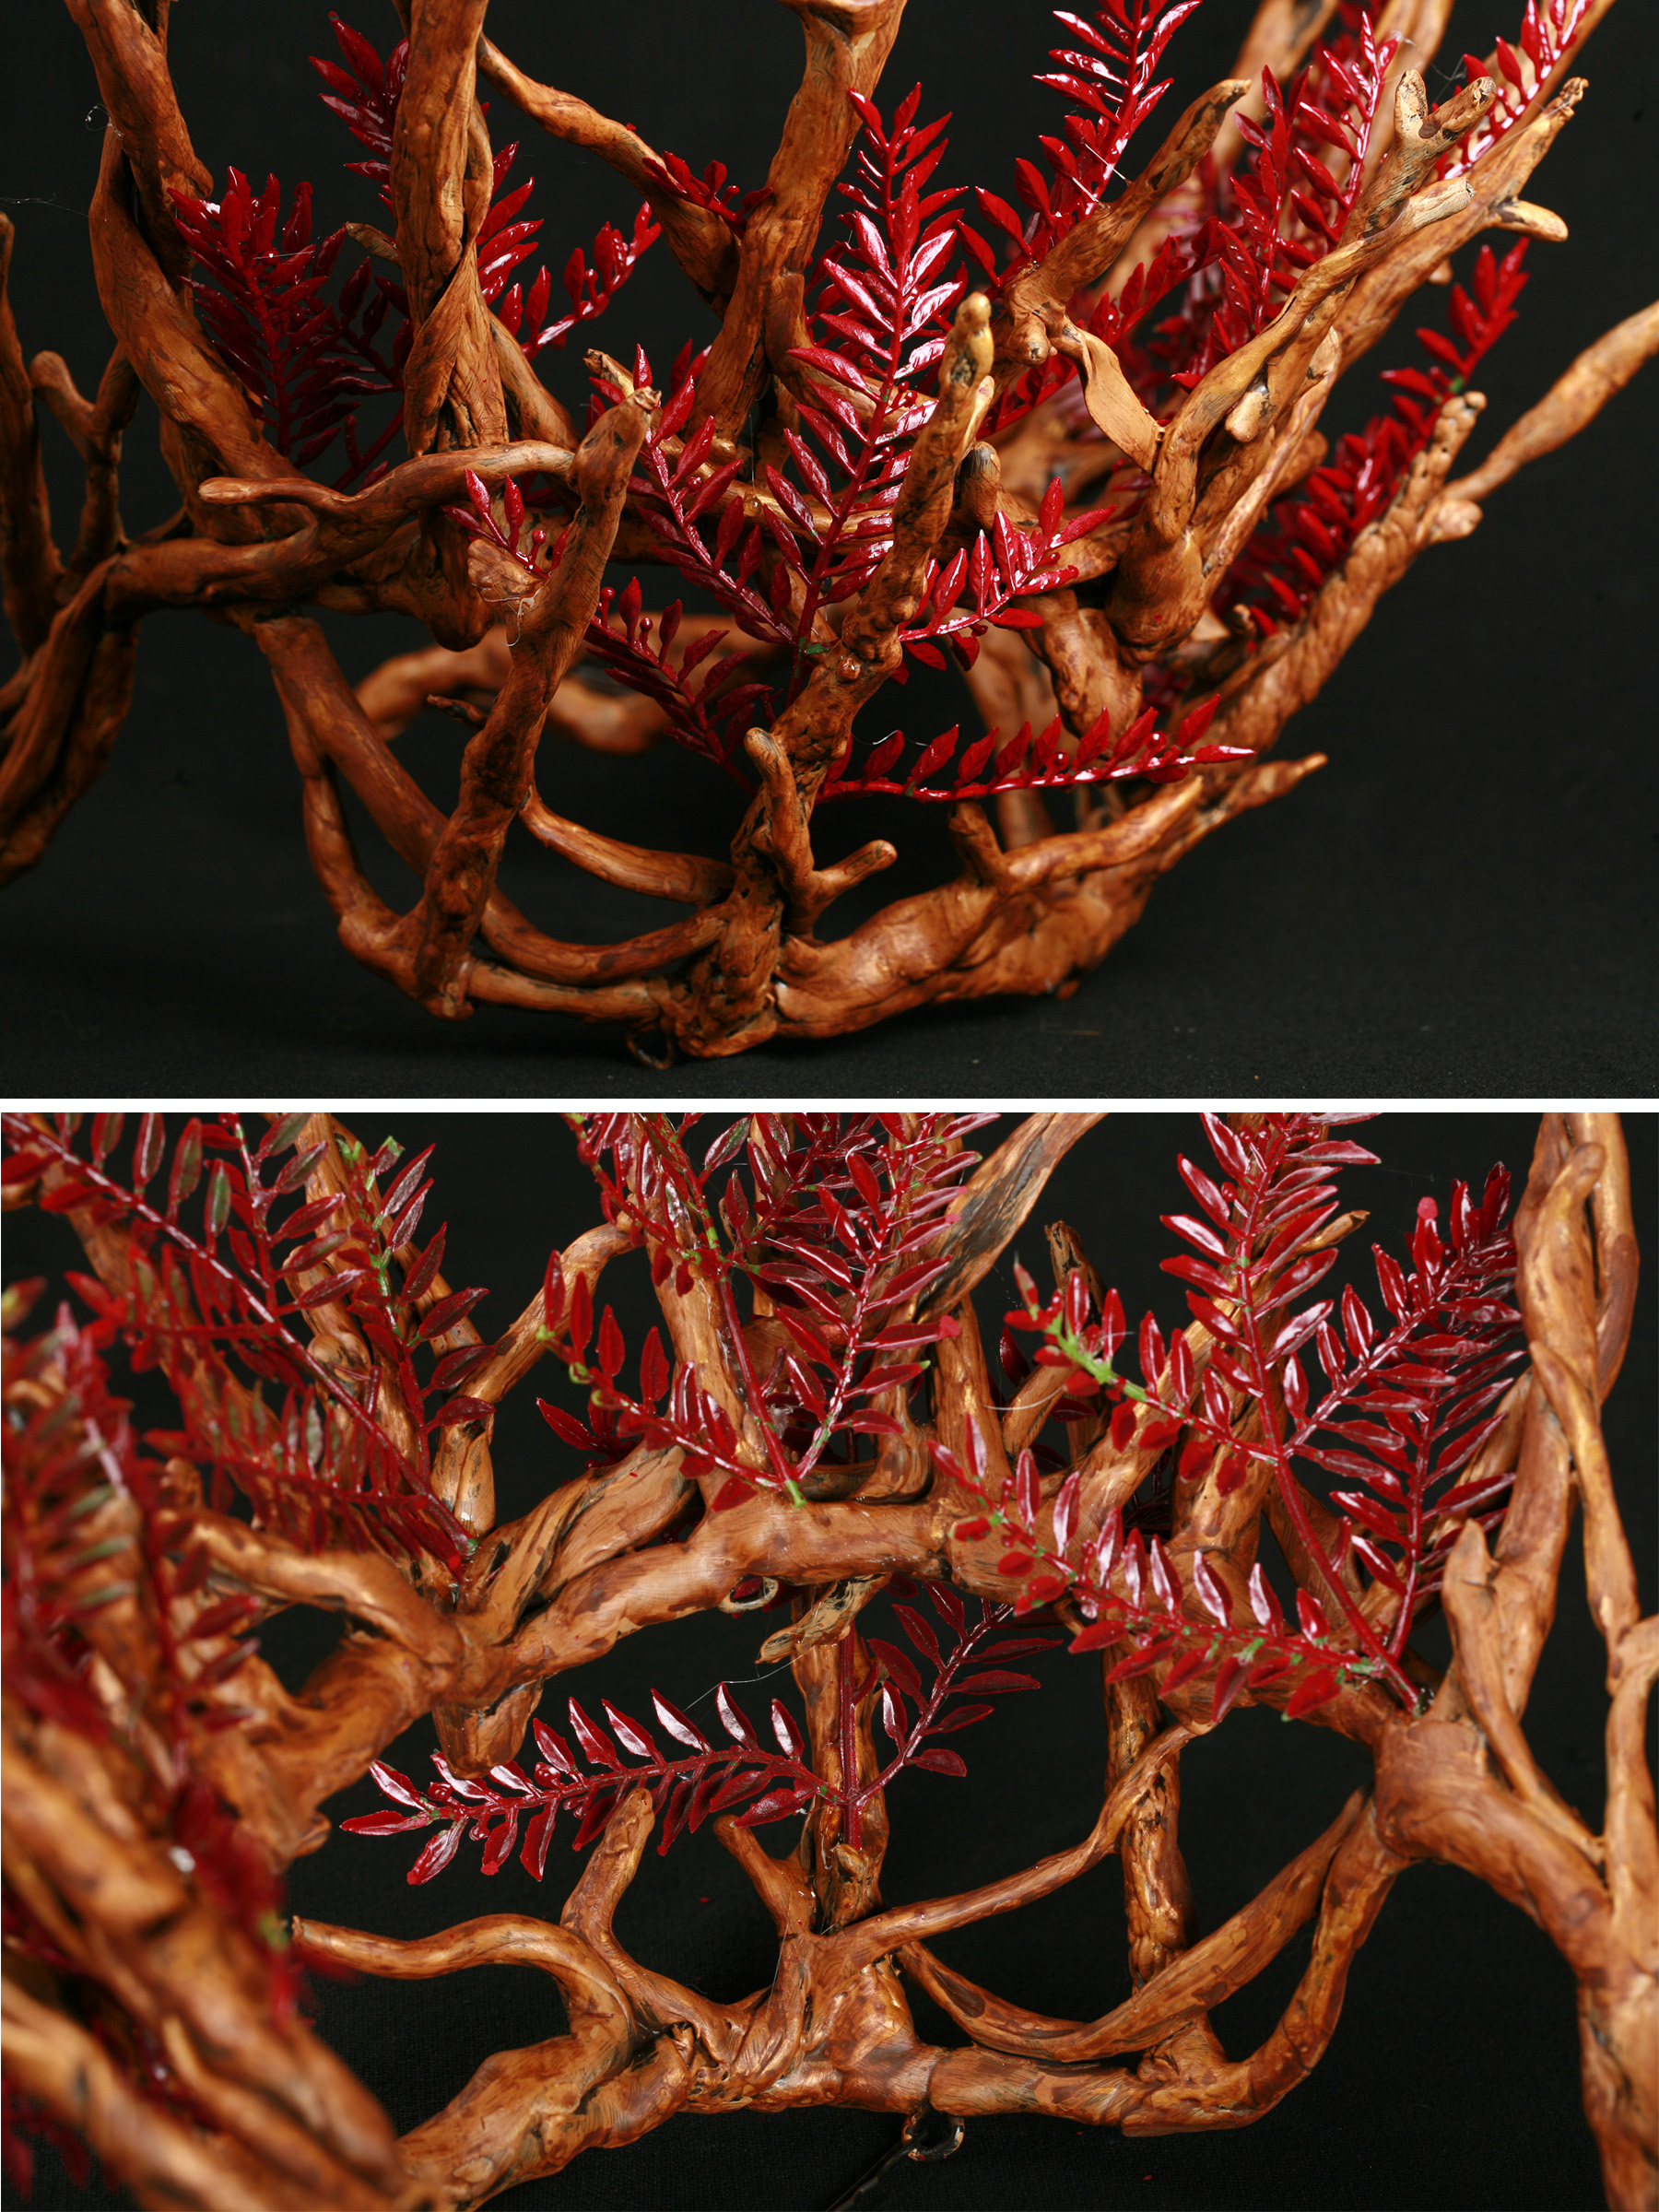 A 2 part image showing different views of plastic replica of a Thranduil's crown - from The Hobbit. It is painted to look realistically like wooden twigs. Small branches of red plastic leaves are woven among the branches.